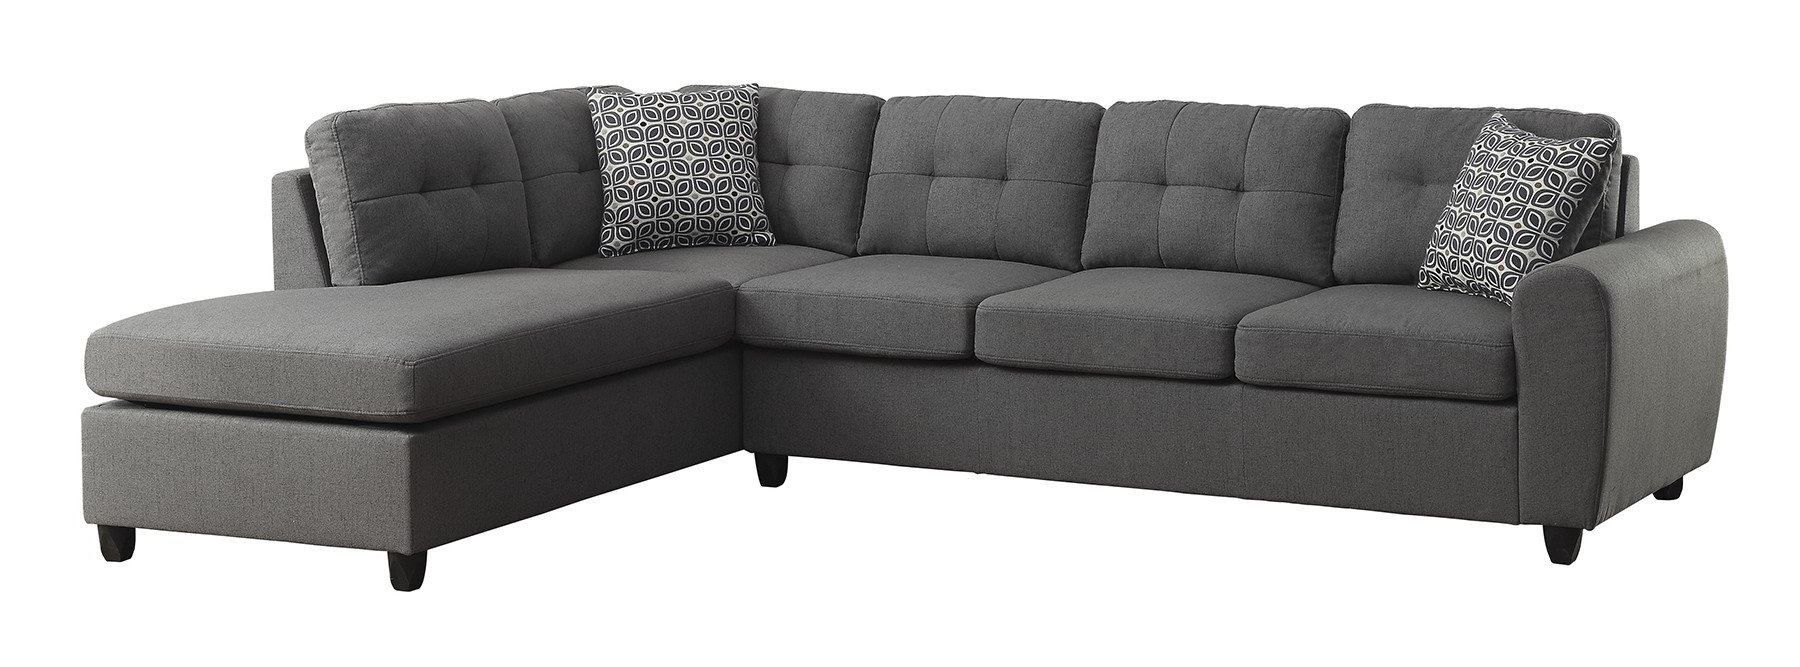 Wayfair Intended For Favorite Everett Wa Sectional Sofas (View 14 of 15)